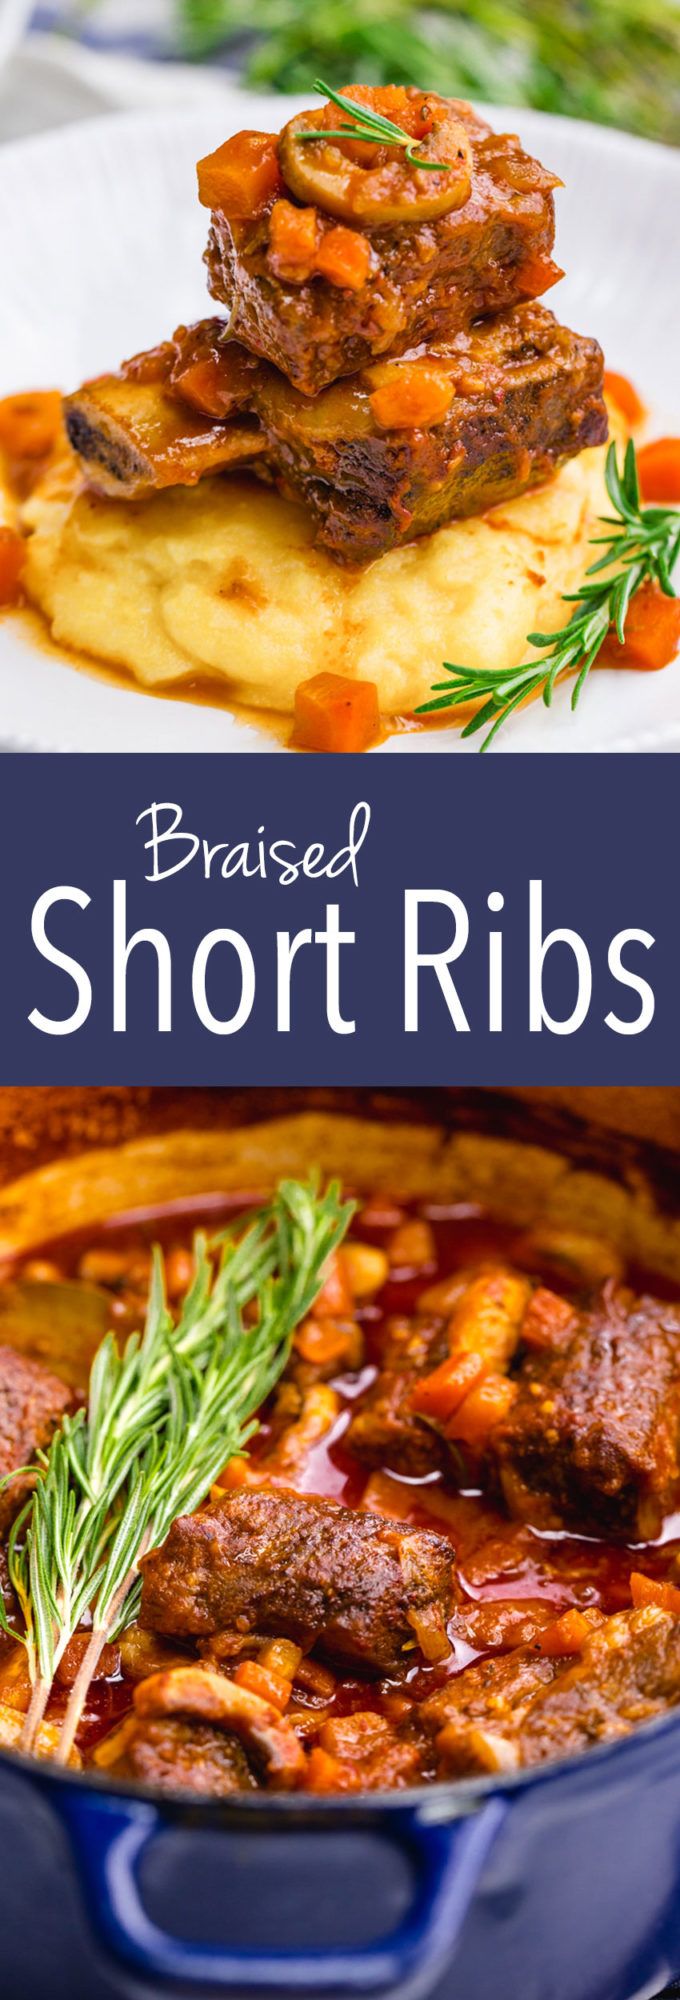 Braised Short Ribs: Deliciously braised in a tomato based sauce with veggies.